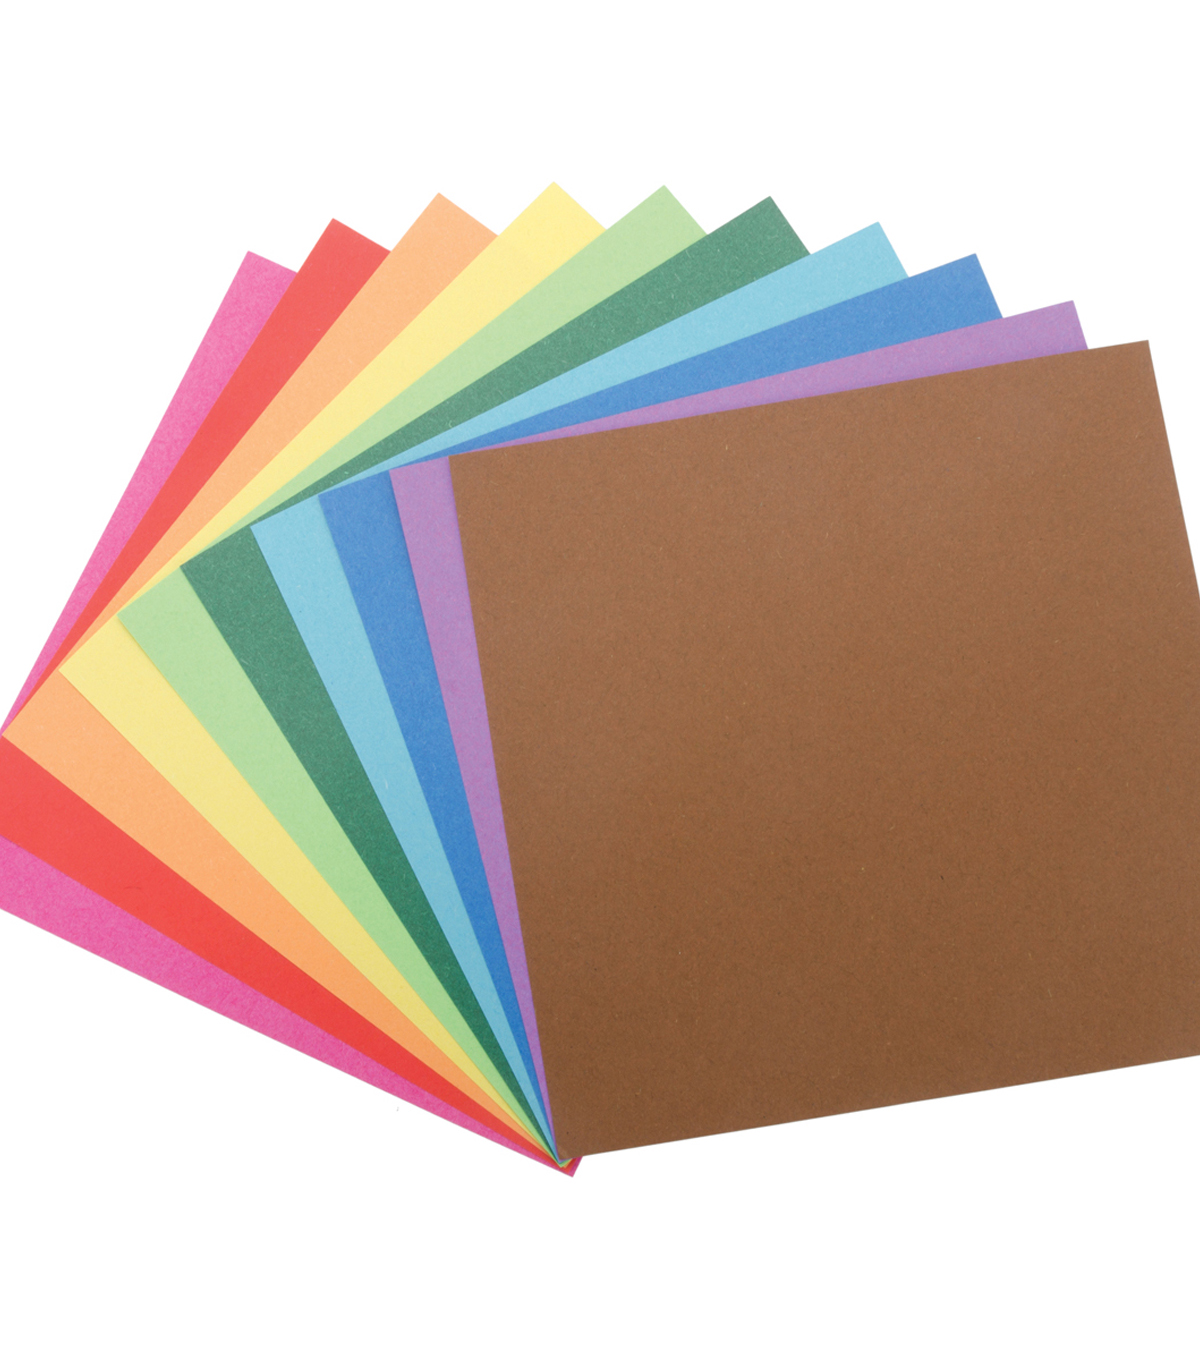 Folia Solid Origami Paper 6\u0022X6\u0022 500/Pkg-Assorted Colors